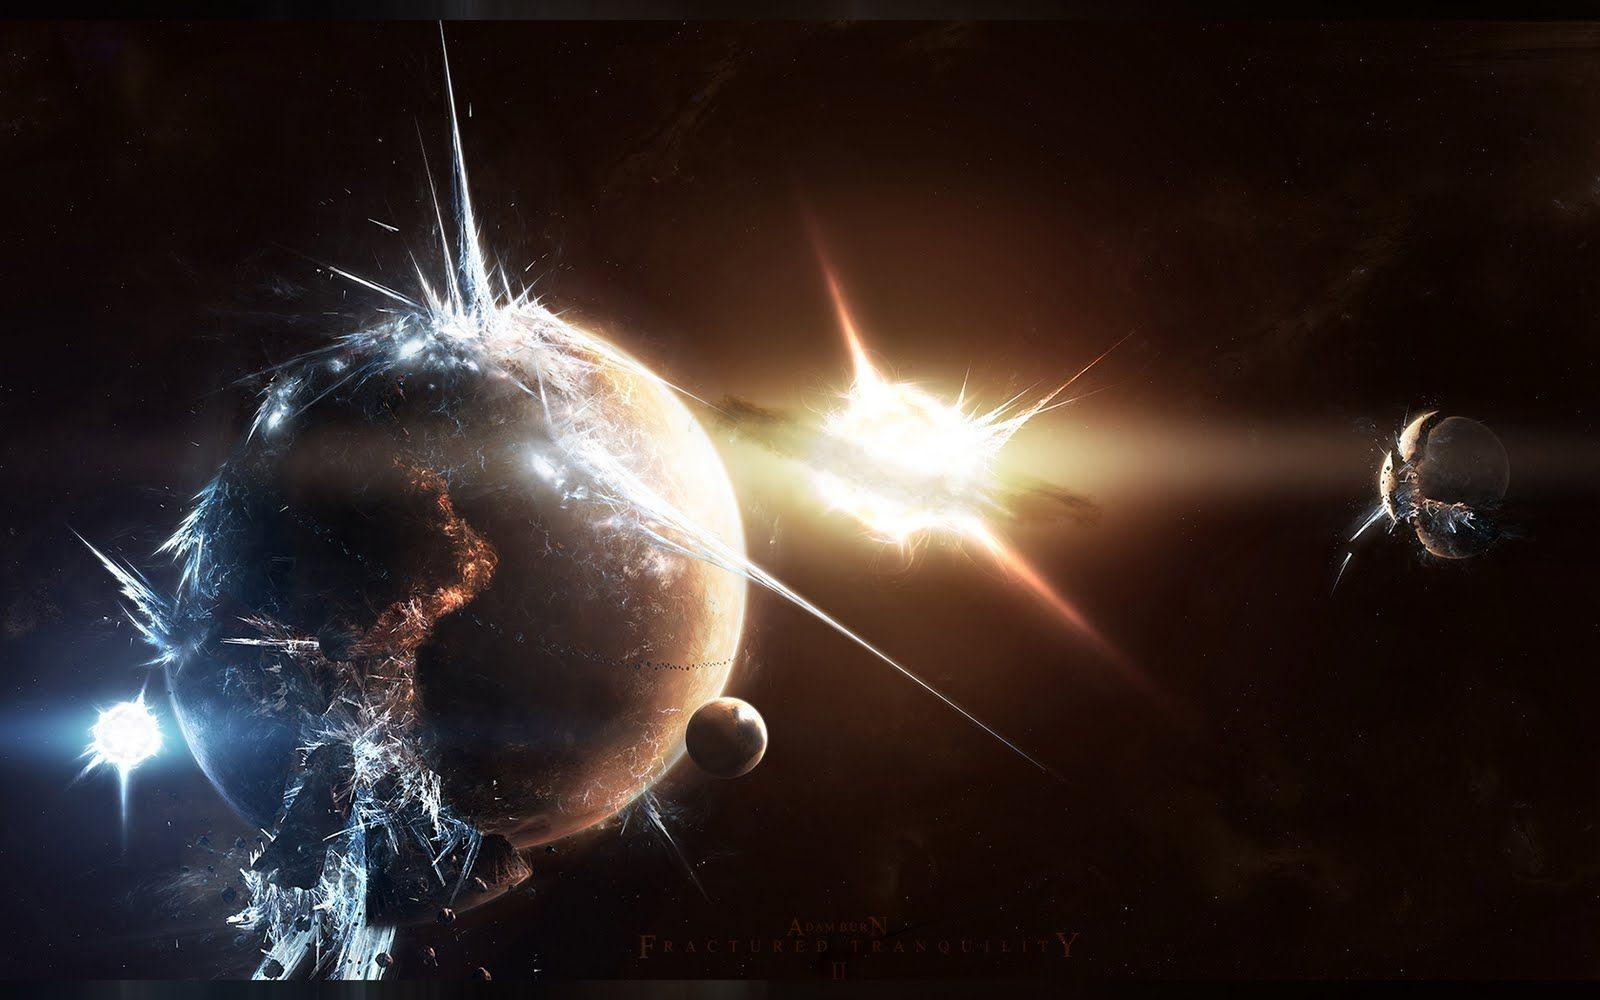 Hd Abstract Space Wallpapers 1080p